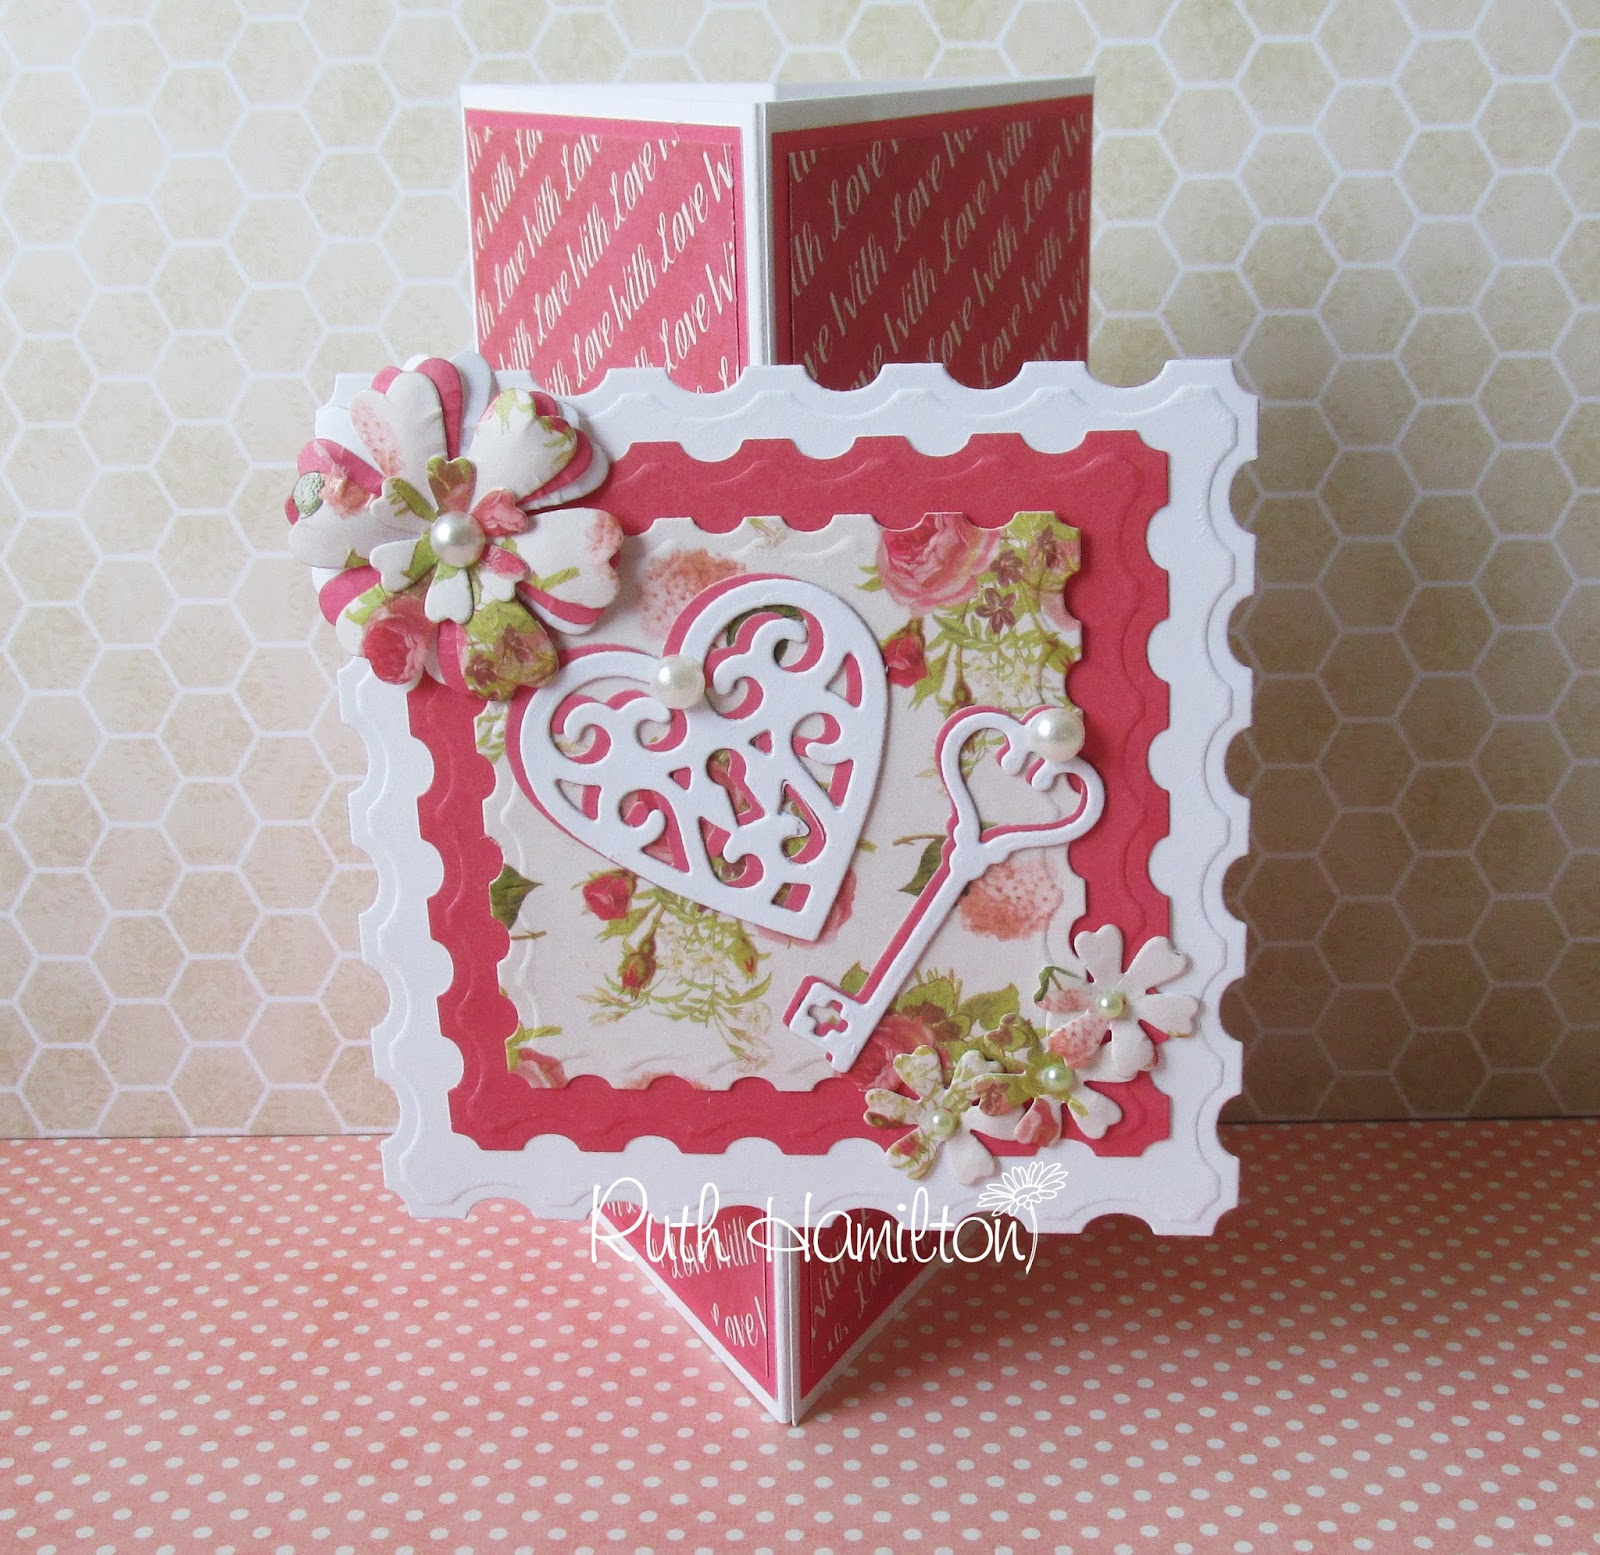 A passion for cards how to make a trimcraft love story triangle card how to make a trimcraft love story triangle card kristyandbryce Image collections